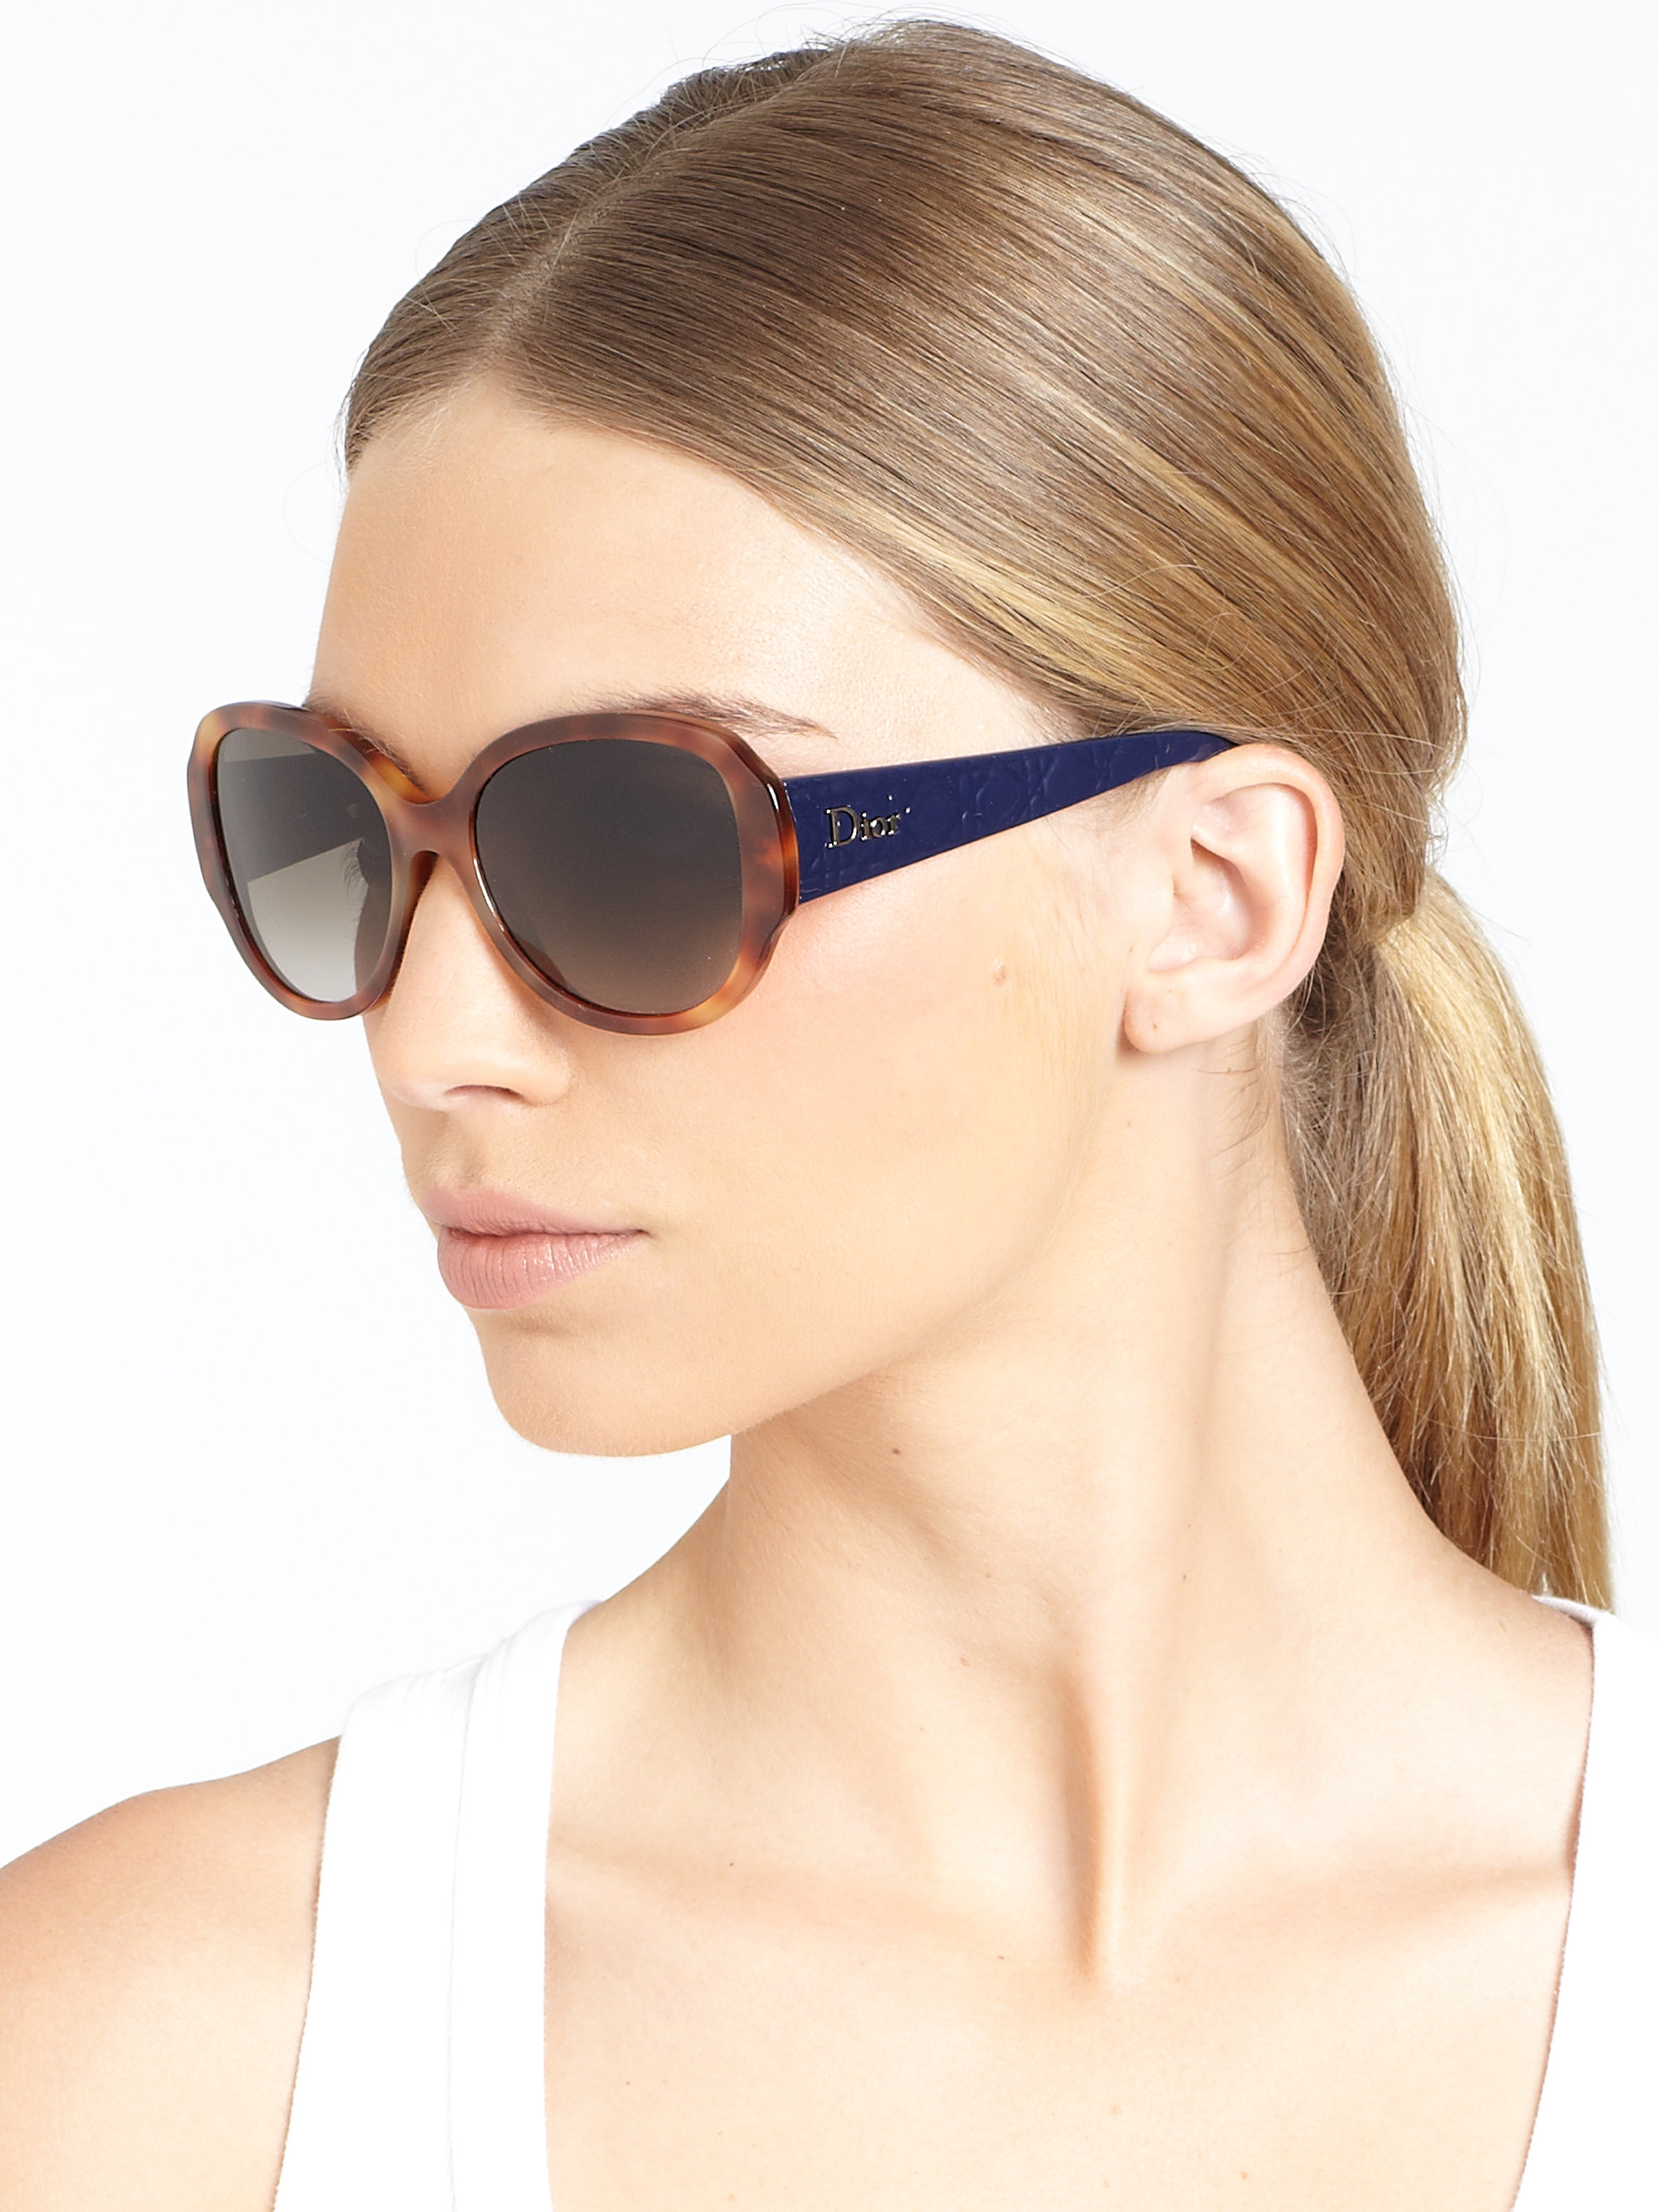 e39a8bf86b Dior Lady in Oversized Round Plastic Sunglasses in Pink - Lyst